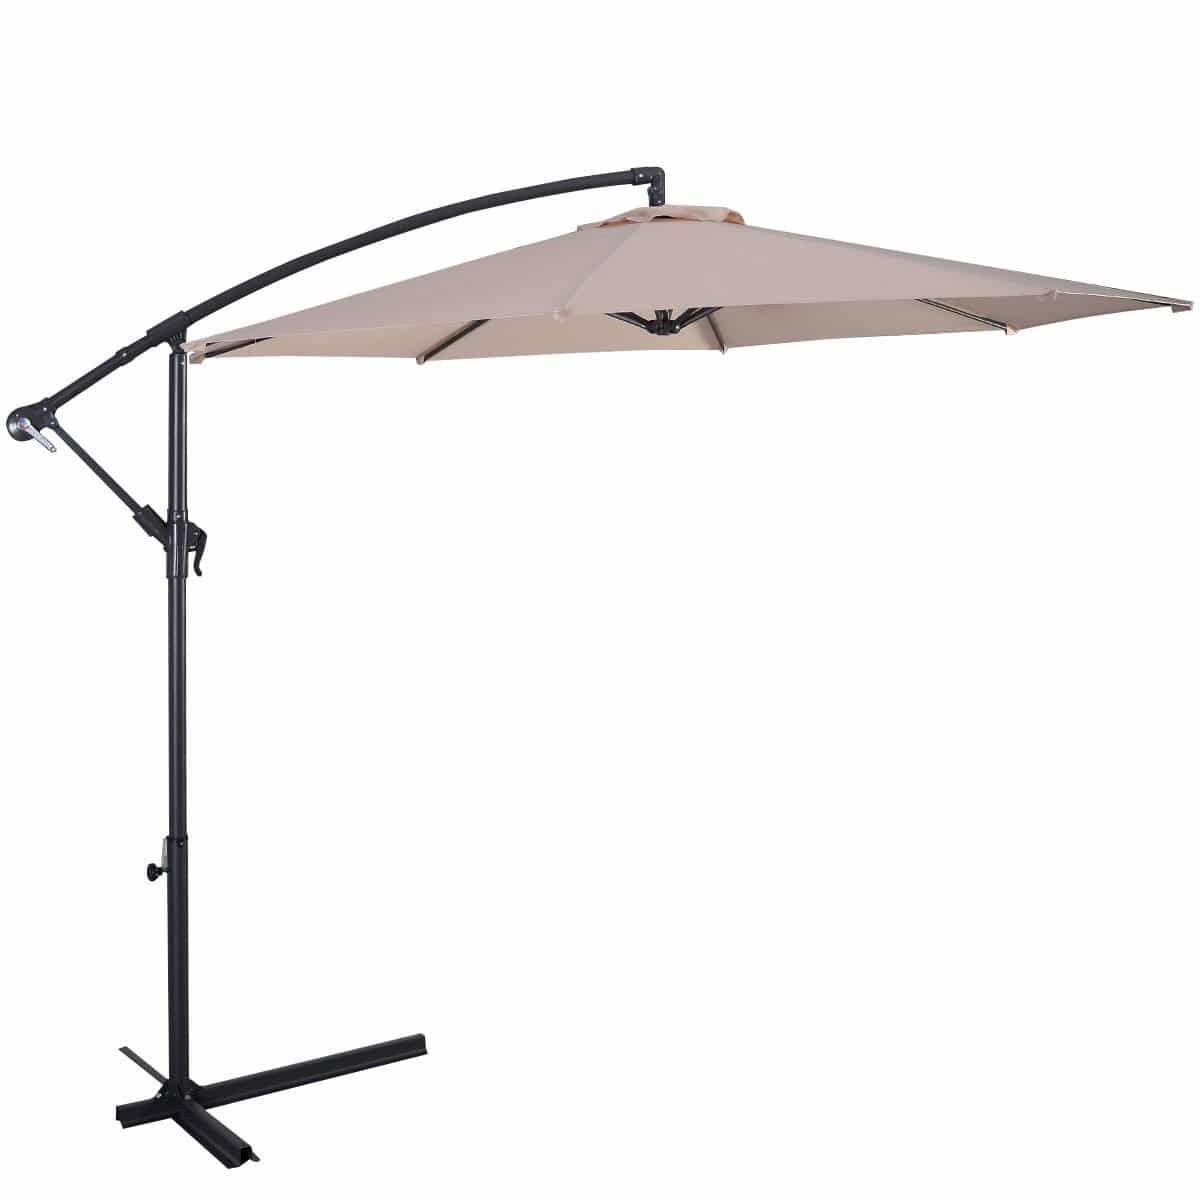 Kicking off our list of the top 3 best offset patio umbrellas is the Giantex 10u2032 Offset Hanging Patio Umbrella. This is the cheapest umbrella on our list ...  sc 1 st  Top Portal Review & Top 3 Best Offset Patio Umbrellas Buying Guides